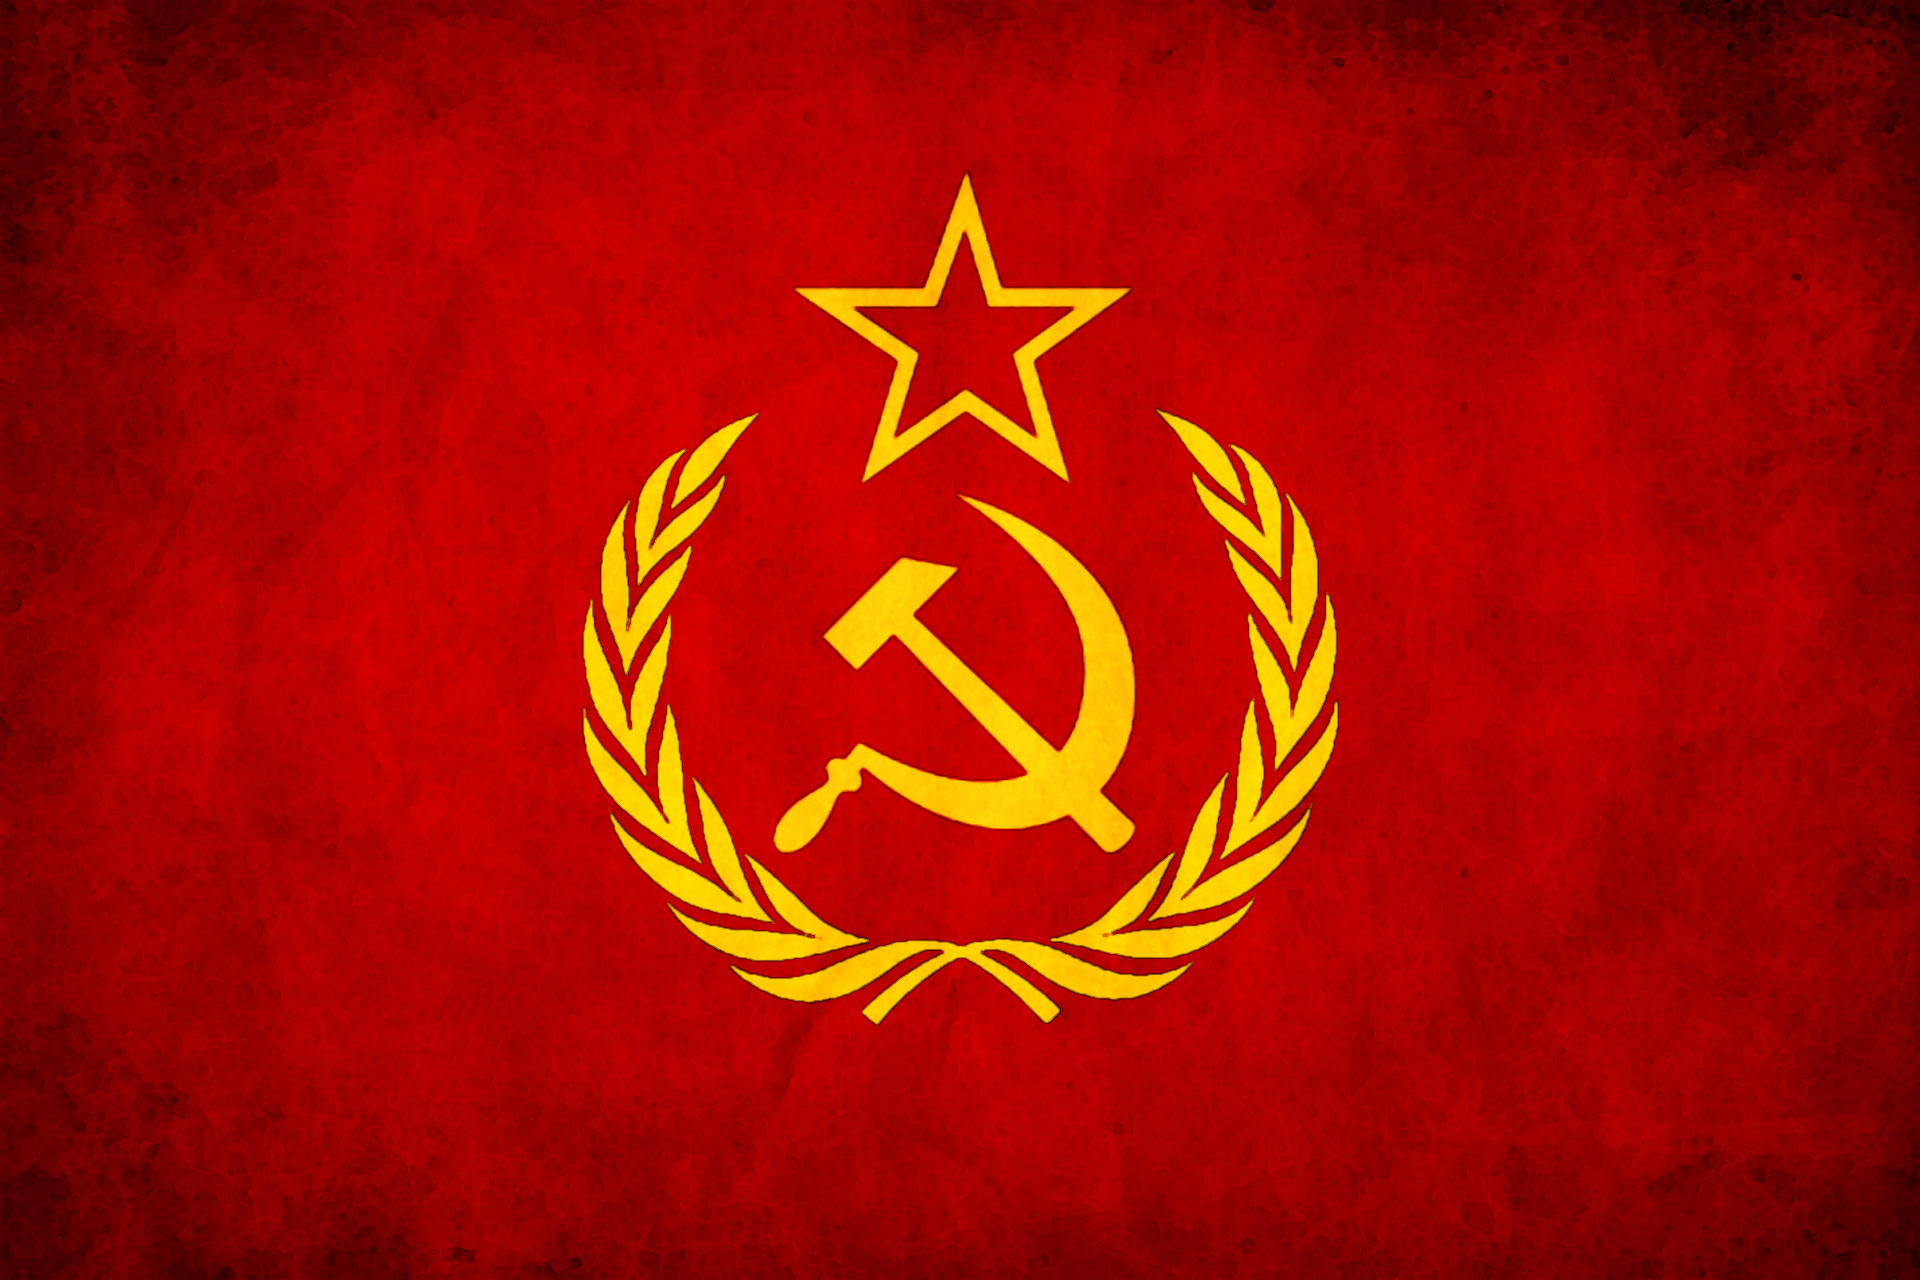 Communist Iphone Wallpaper Communism Hd Wallpaper Background Image 1920x1280 Id